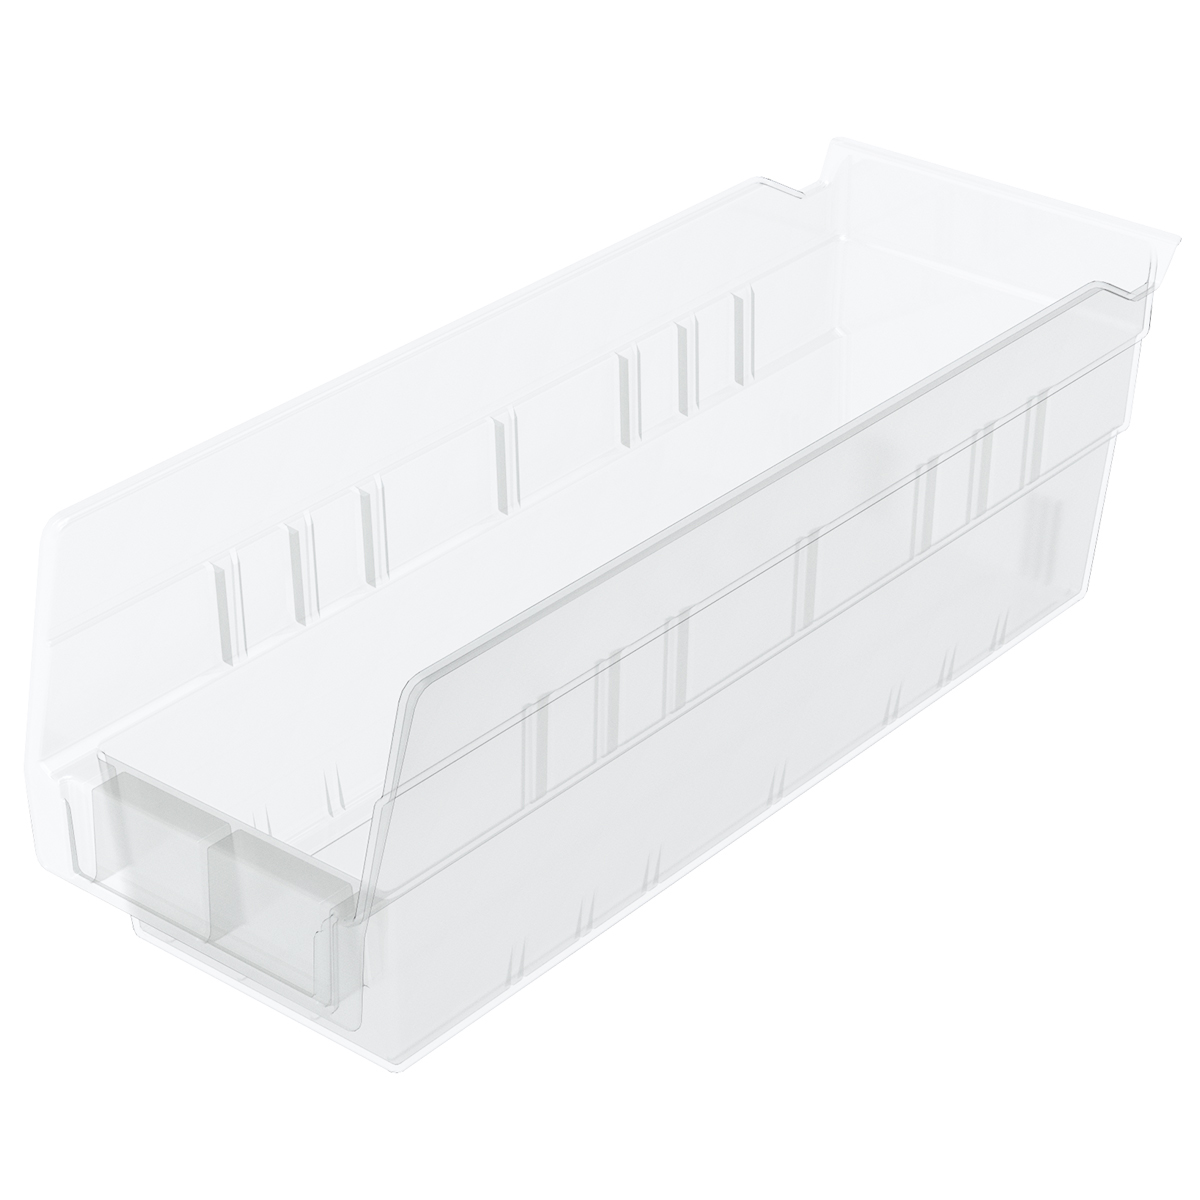 Shelf Bin 11-5/8 x 4-1/8 x 4, Clear (30120SCLAR).  This item sold in carton quantities of 24.